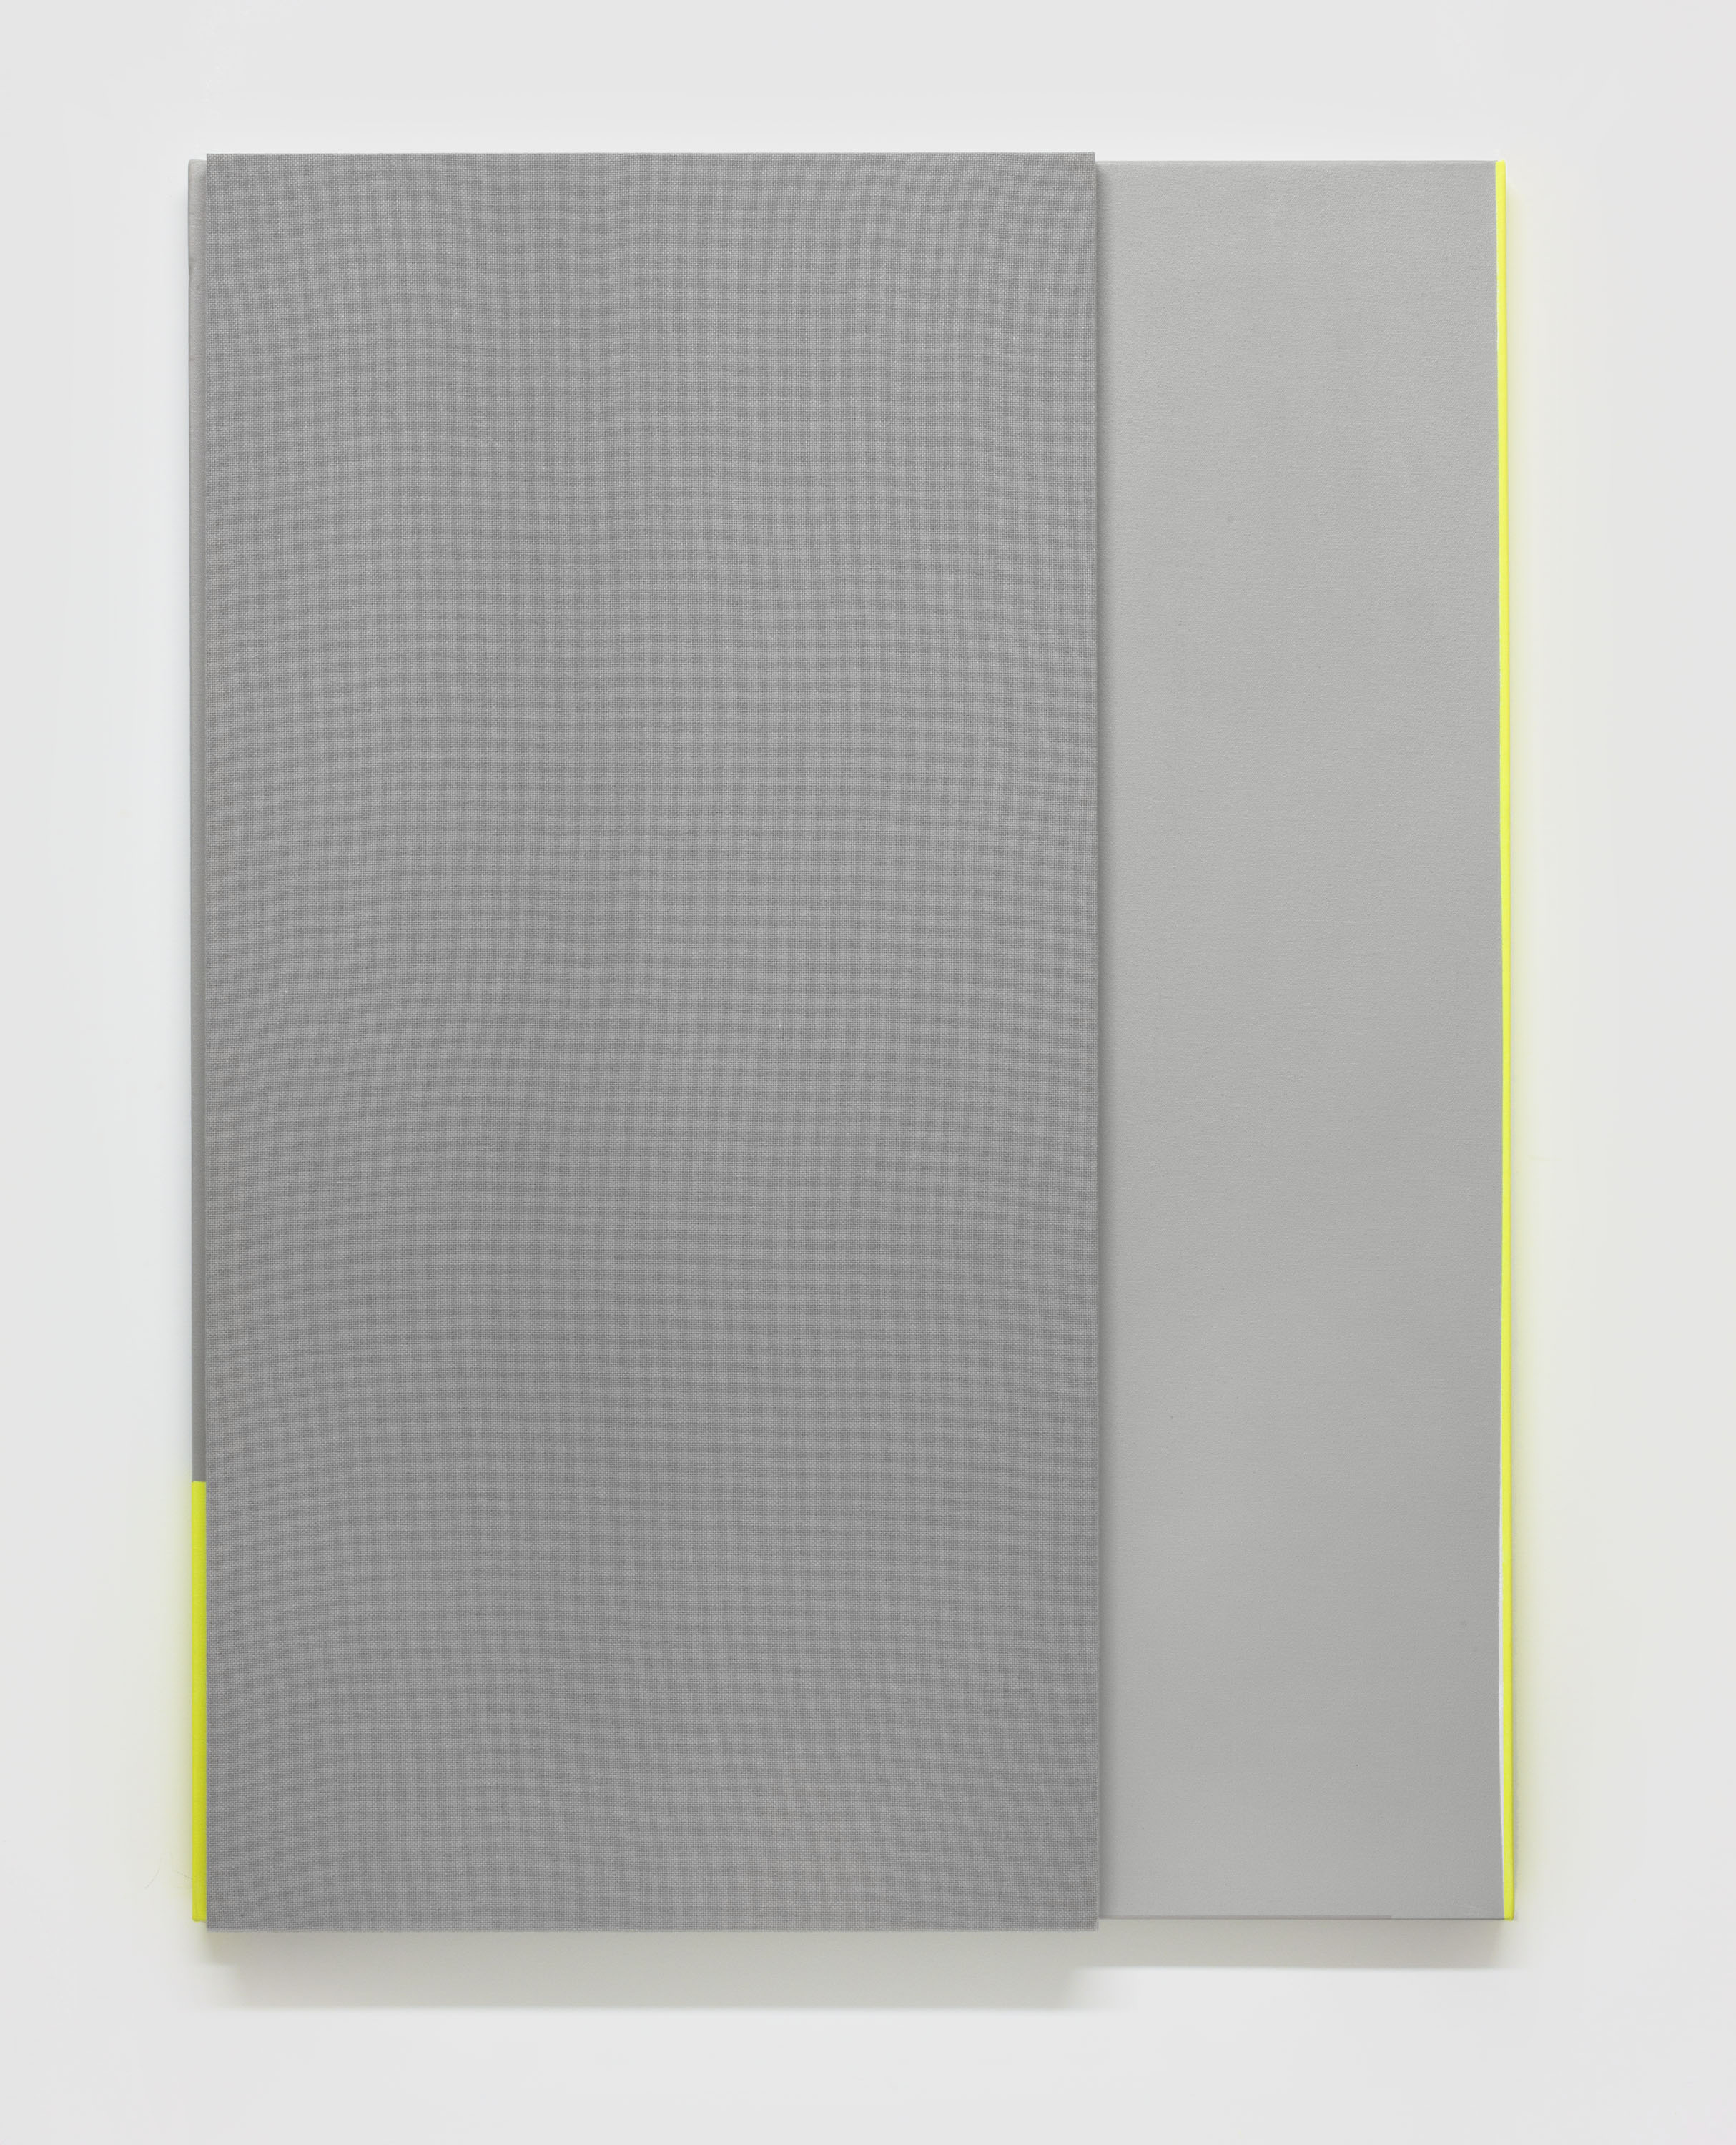 Soft Gray Tone with Reverberation #2 --Acoustic absorber panel and acrylic paint on canvas, 36 x 48 inches each, 2013.